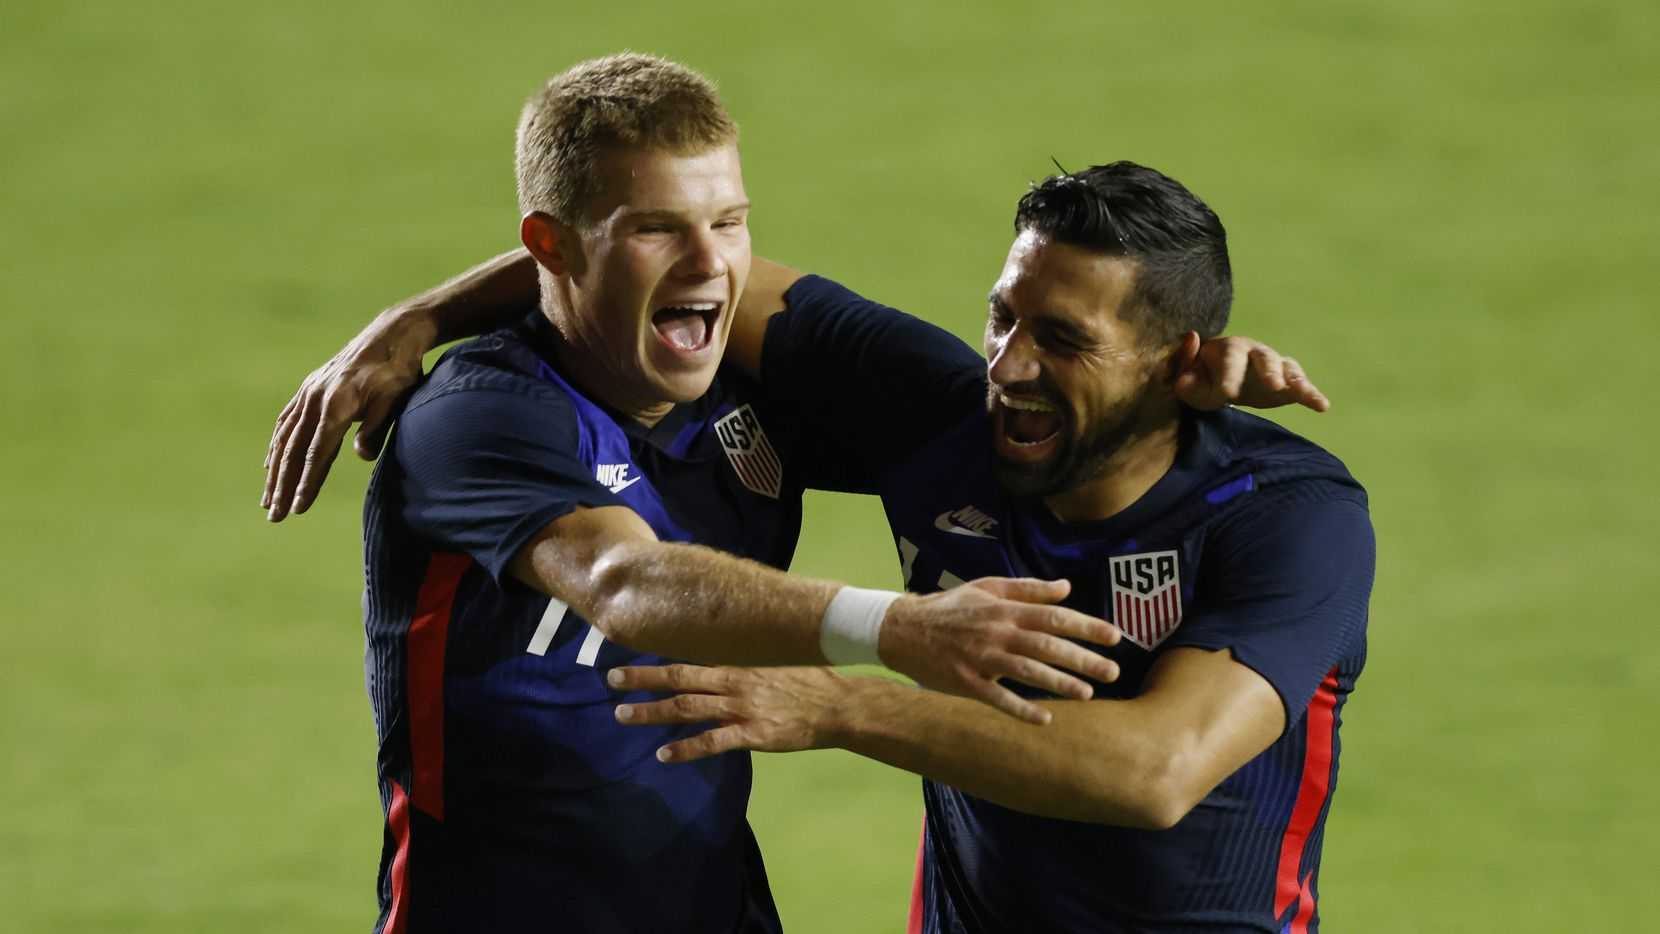 FORT LAUDERDALE, FLORIDA - DECEMBER 09: Chris Mueller #11 of the United States celebrates with Sebastian Lletget #17 after scoring a goal in the 25' against El Salvador during the first half at Inter Miami CF Stadium on December 09, 2020 in Fort Lauderdale, Florida.